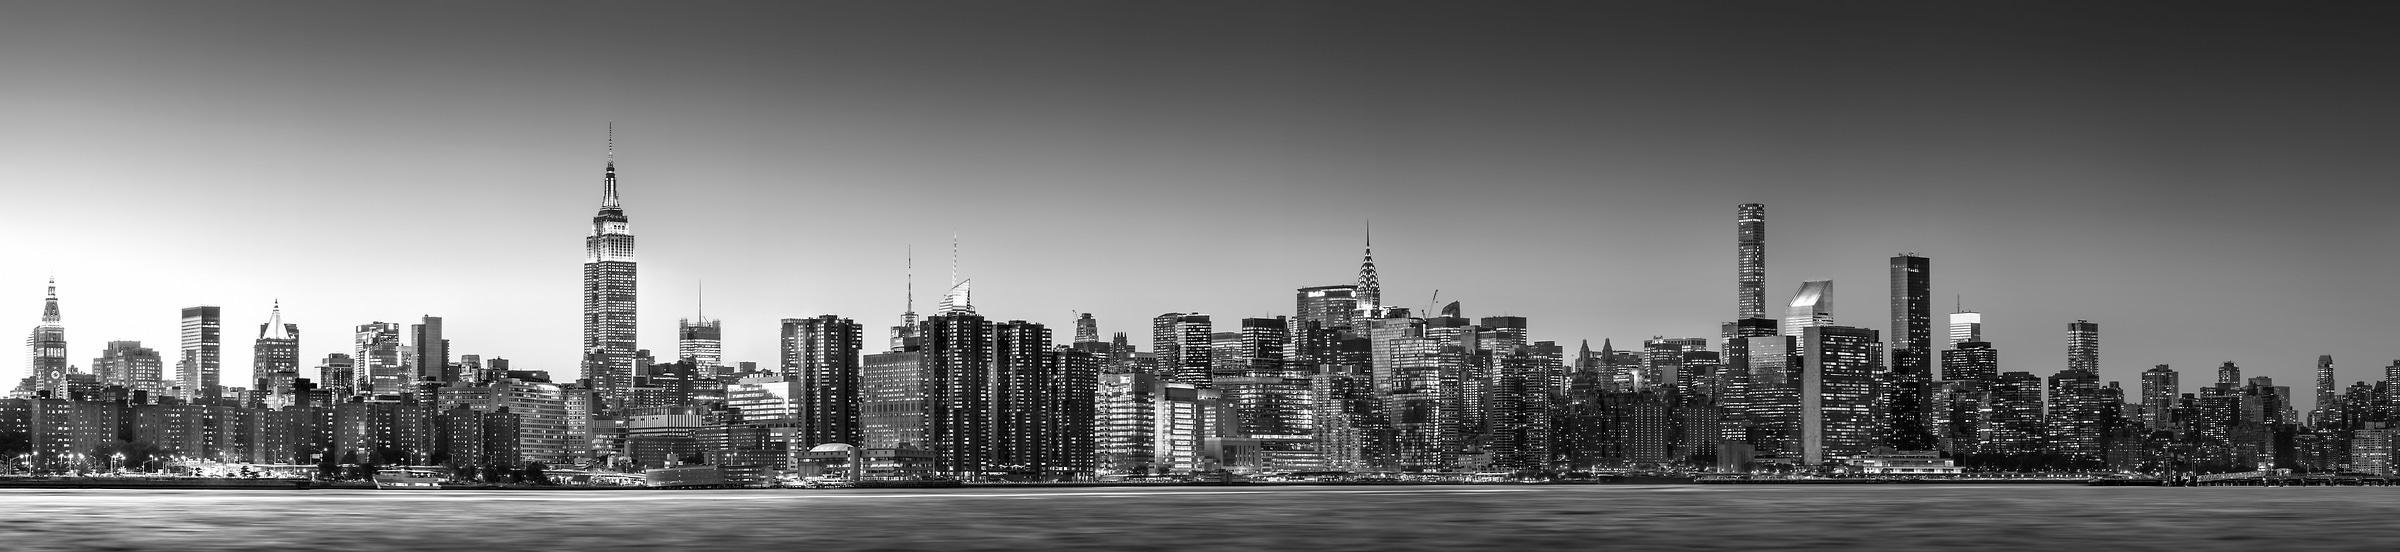 1,541 megapixels! The highest resolution cityscape VAST photo of the Midtown Manhattan city skyline in the evening sunset in New York City; created by Dan Piech